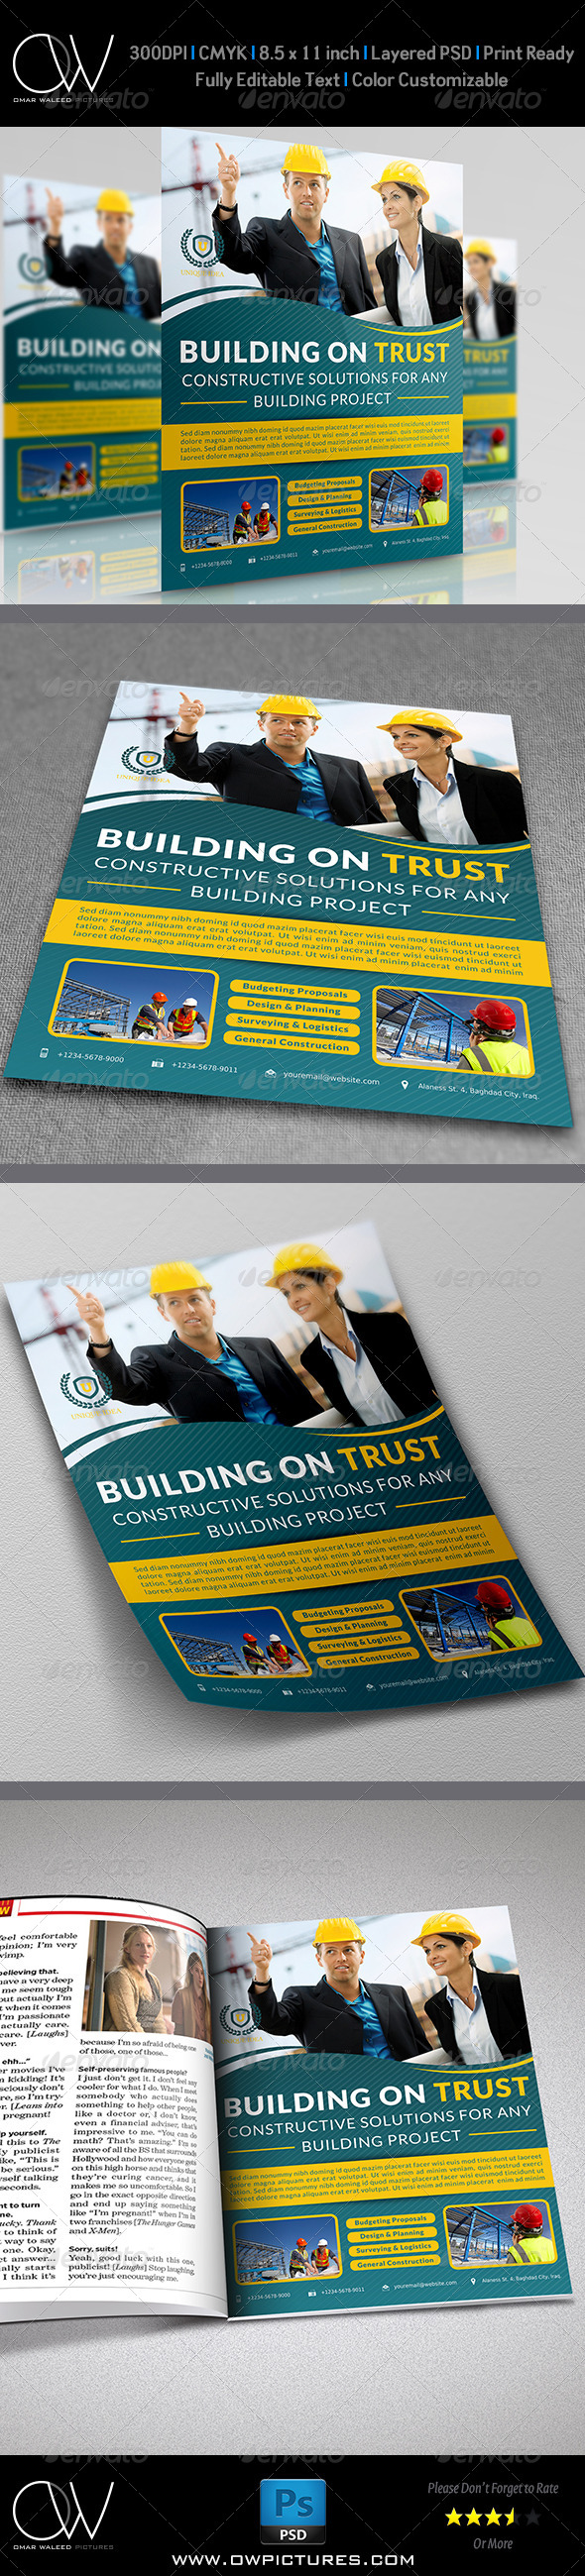 Construction Business Flyer - Corporate Flyers